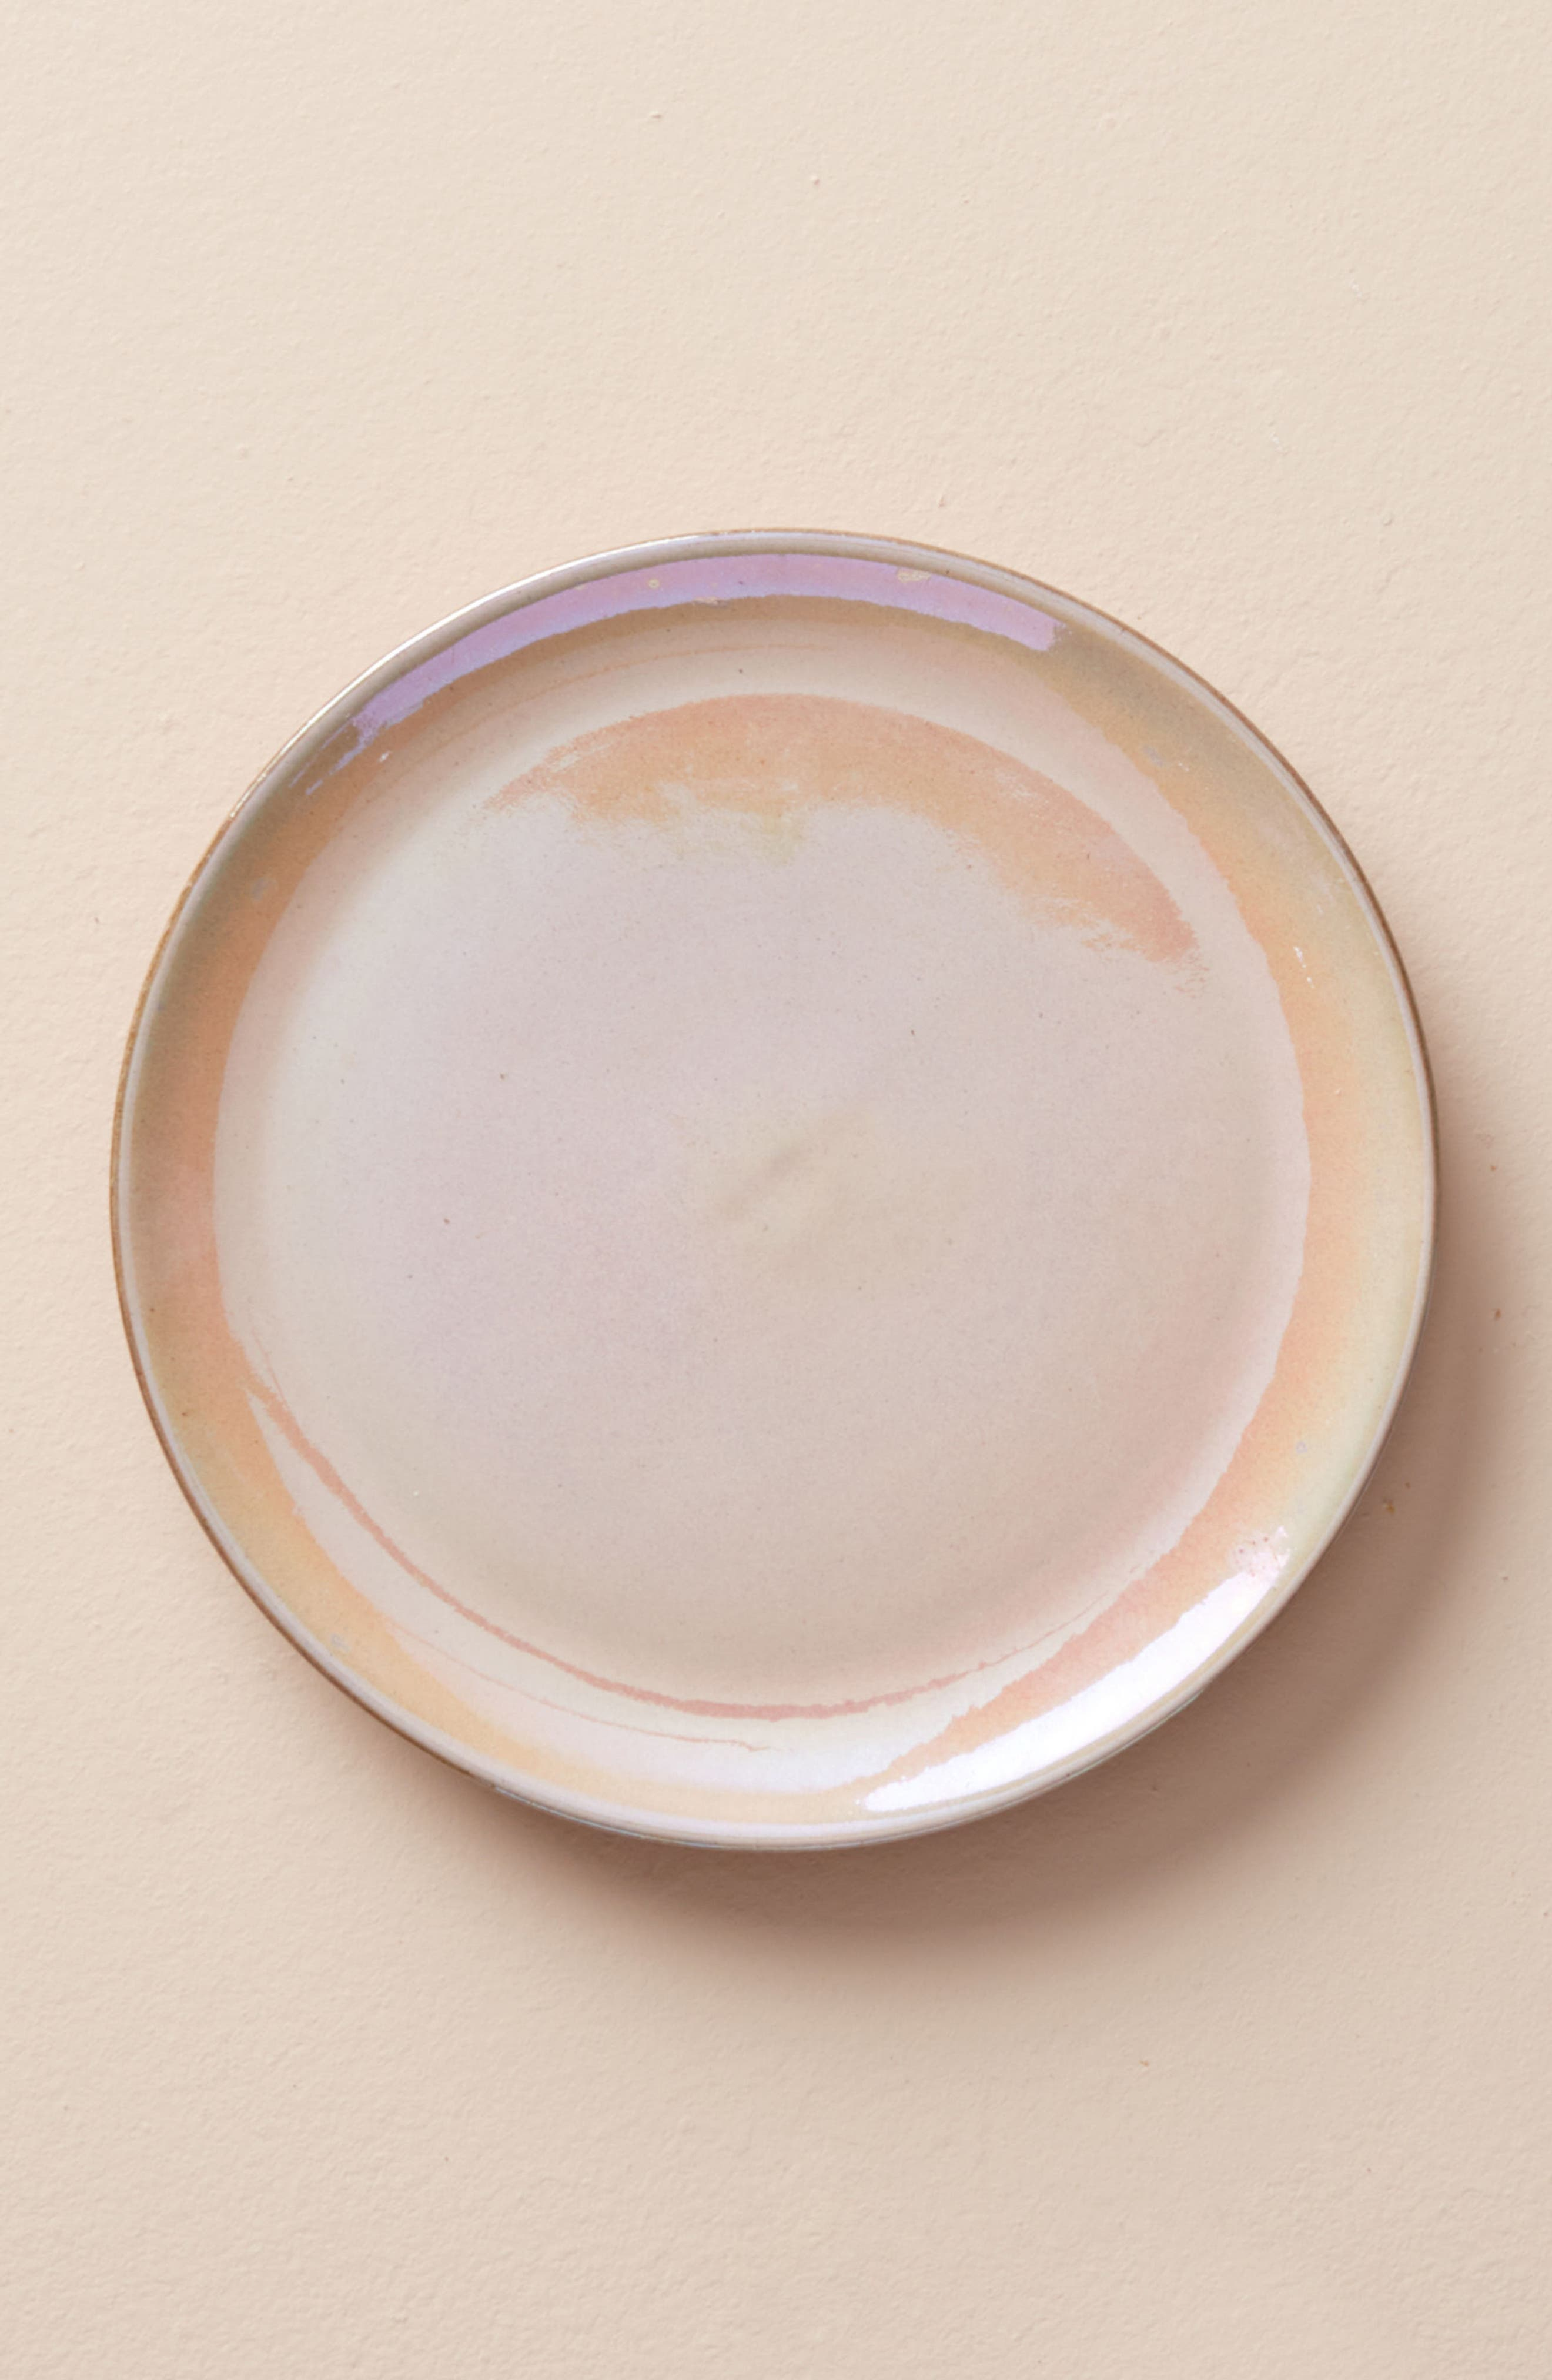 Anthropologie Aliza Canapé Plate